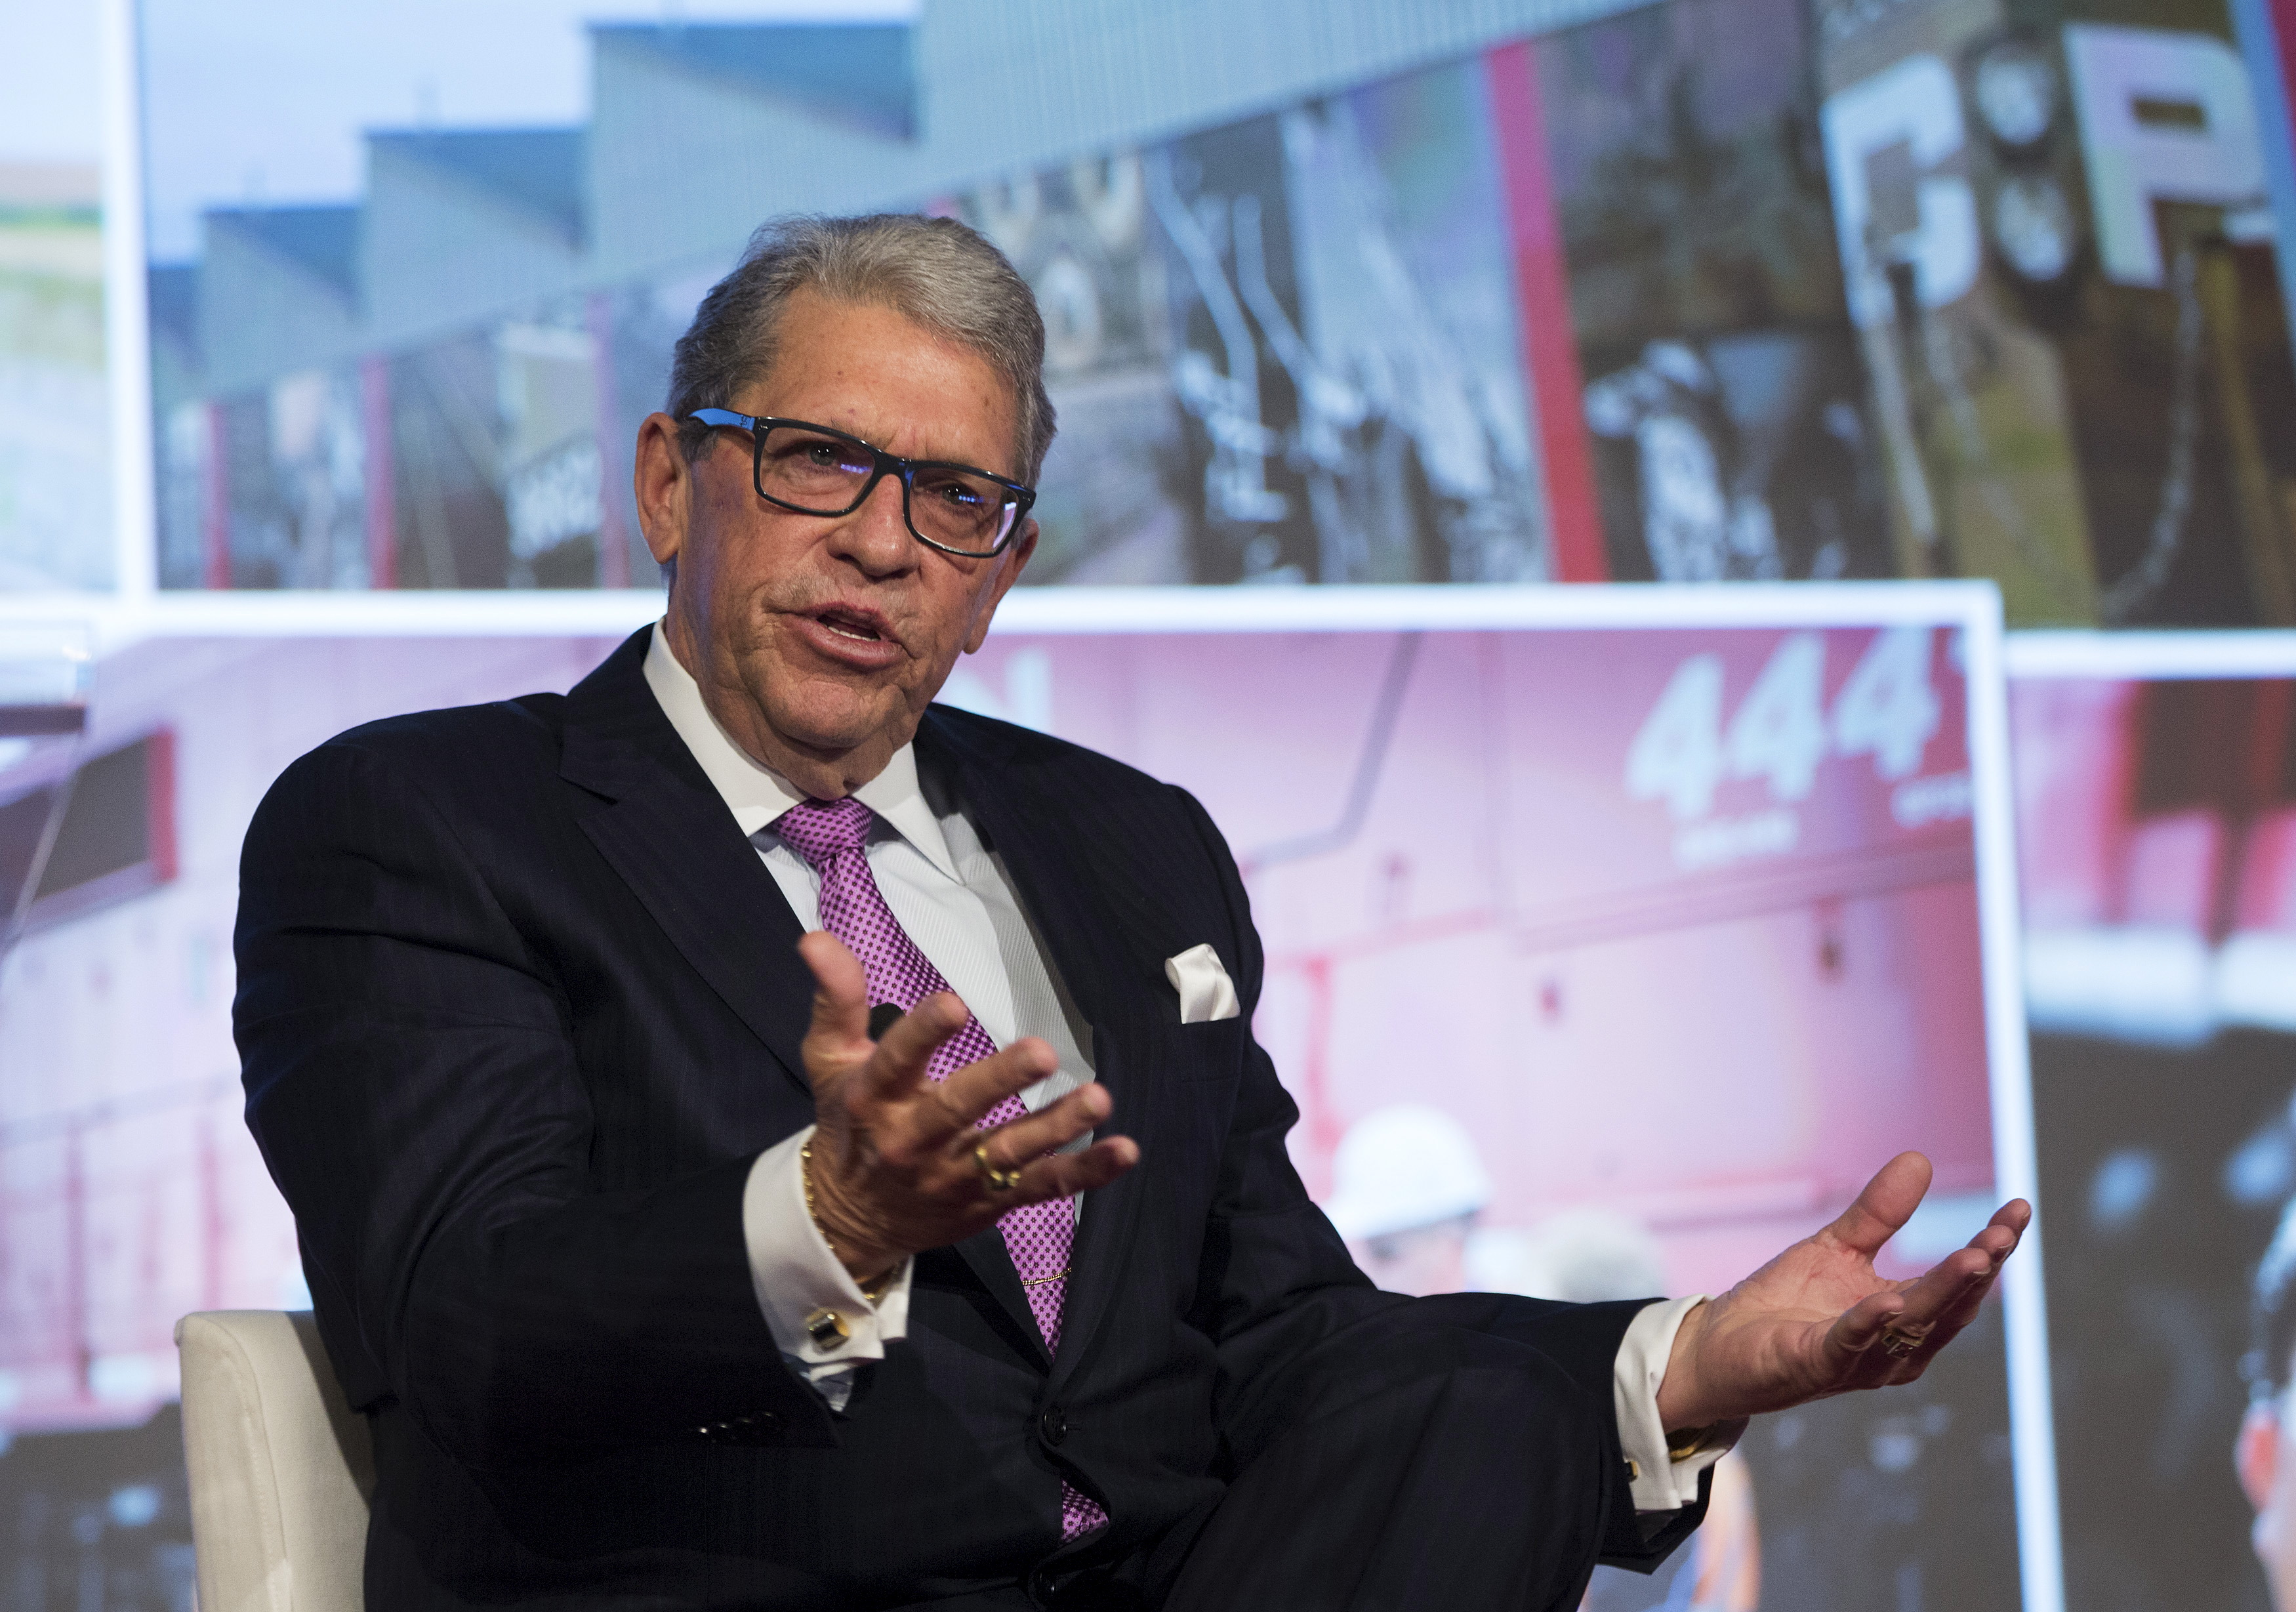 CSX shares tumble after CEO's medical leave